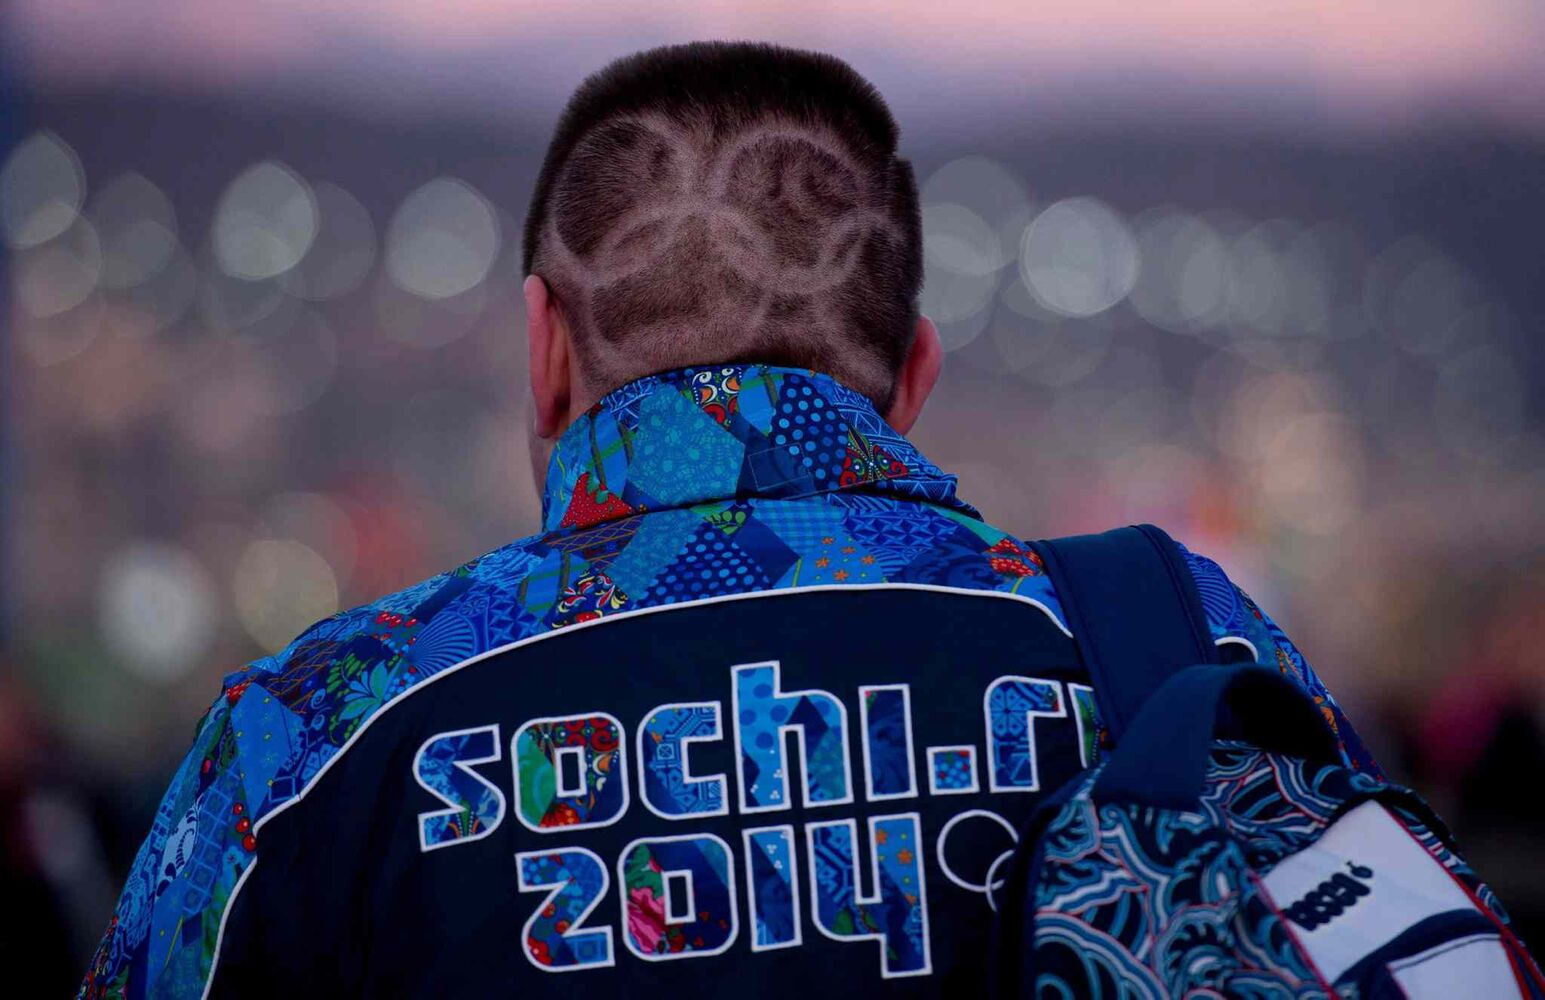 CORRECTS NATIONALITY - A Russian fan with Olympic rings shaved into his hair make his way to the opening ceremonies for the Sochi Winter Olympics Friday February 7, 2014 in Sochi, Russia. THE CANADIAN PRESS/Adrian Wyld